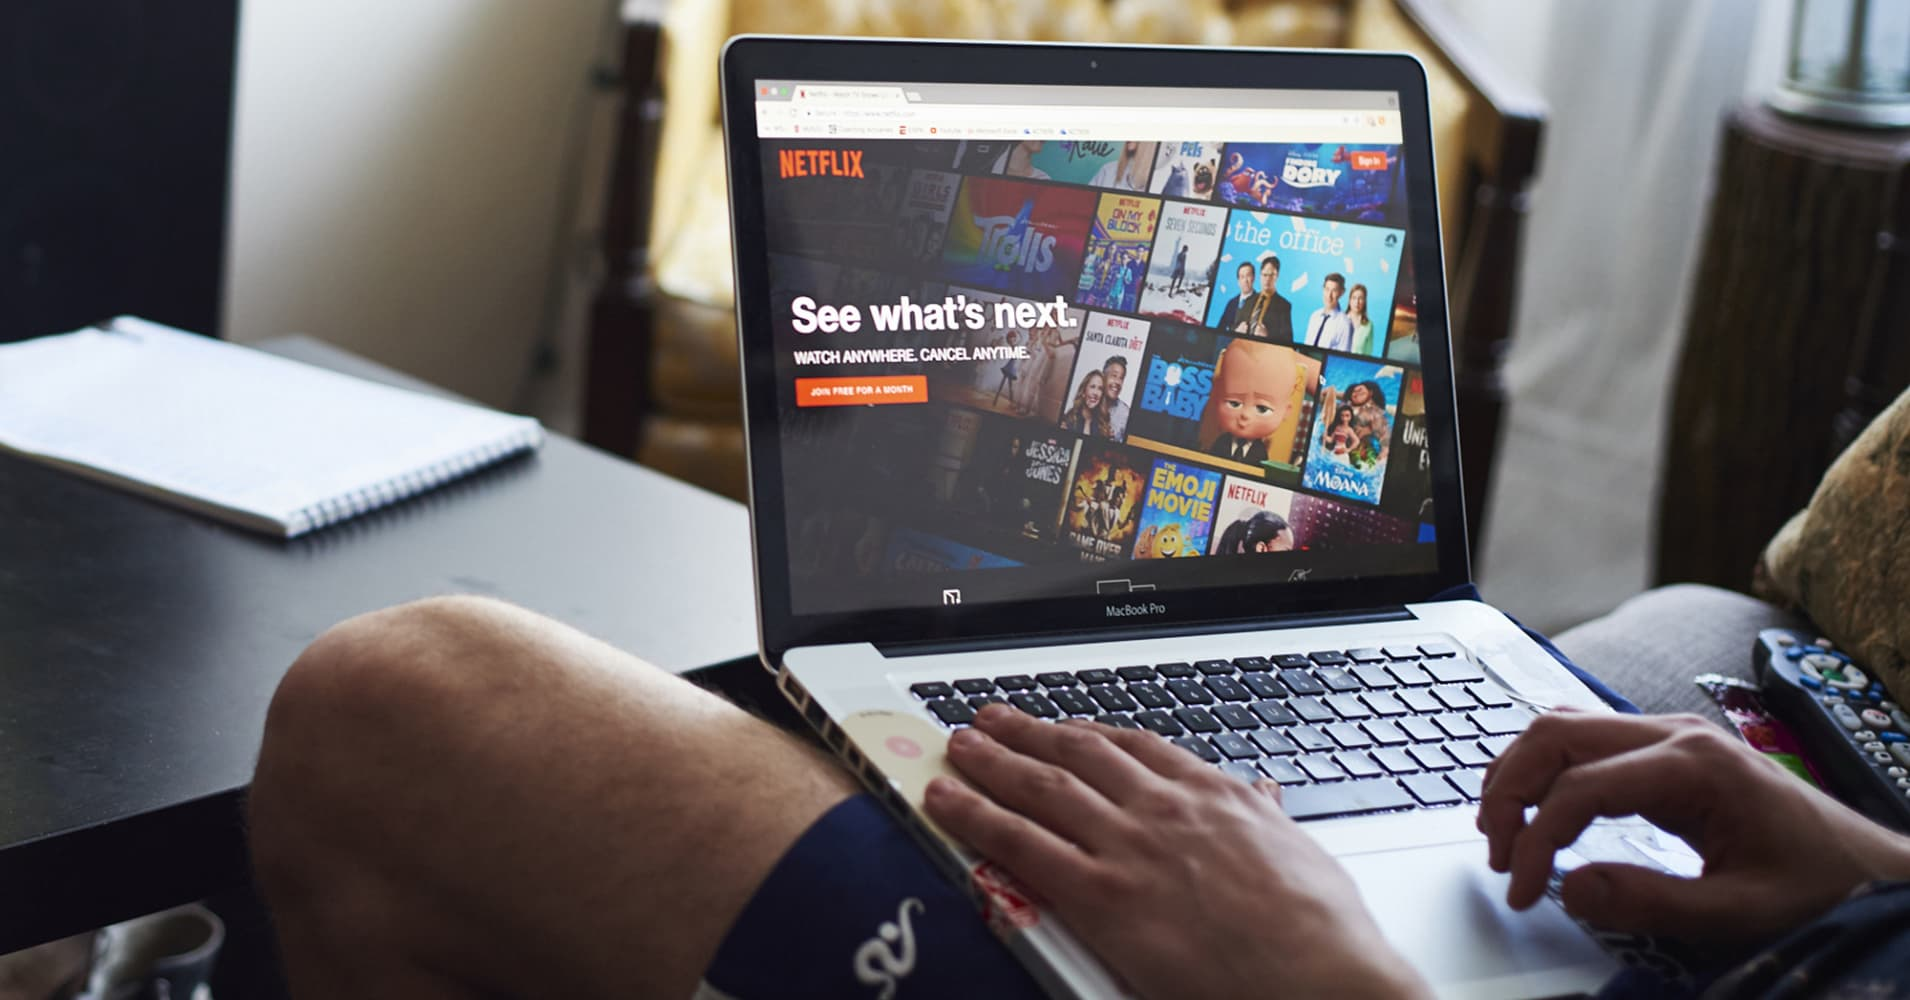 Netflix isn't killing movie theaters: Viewers who stream more also go to cinemas more